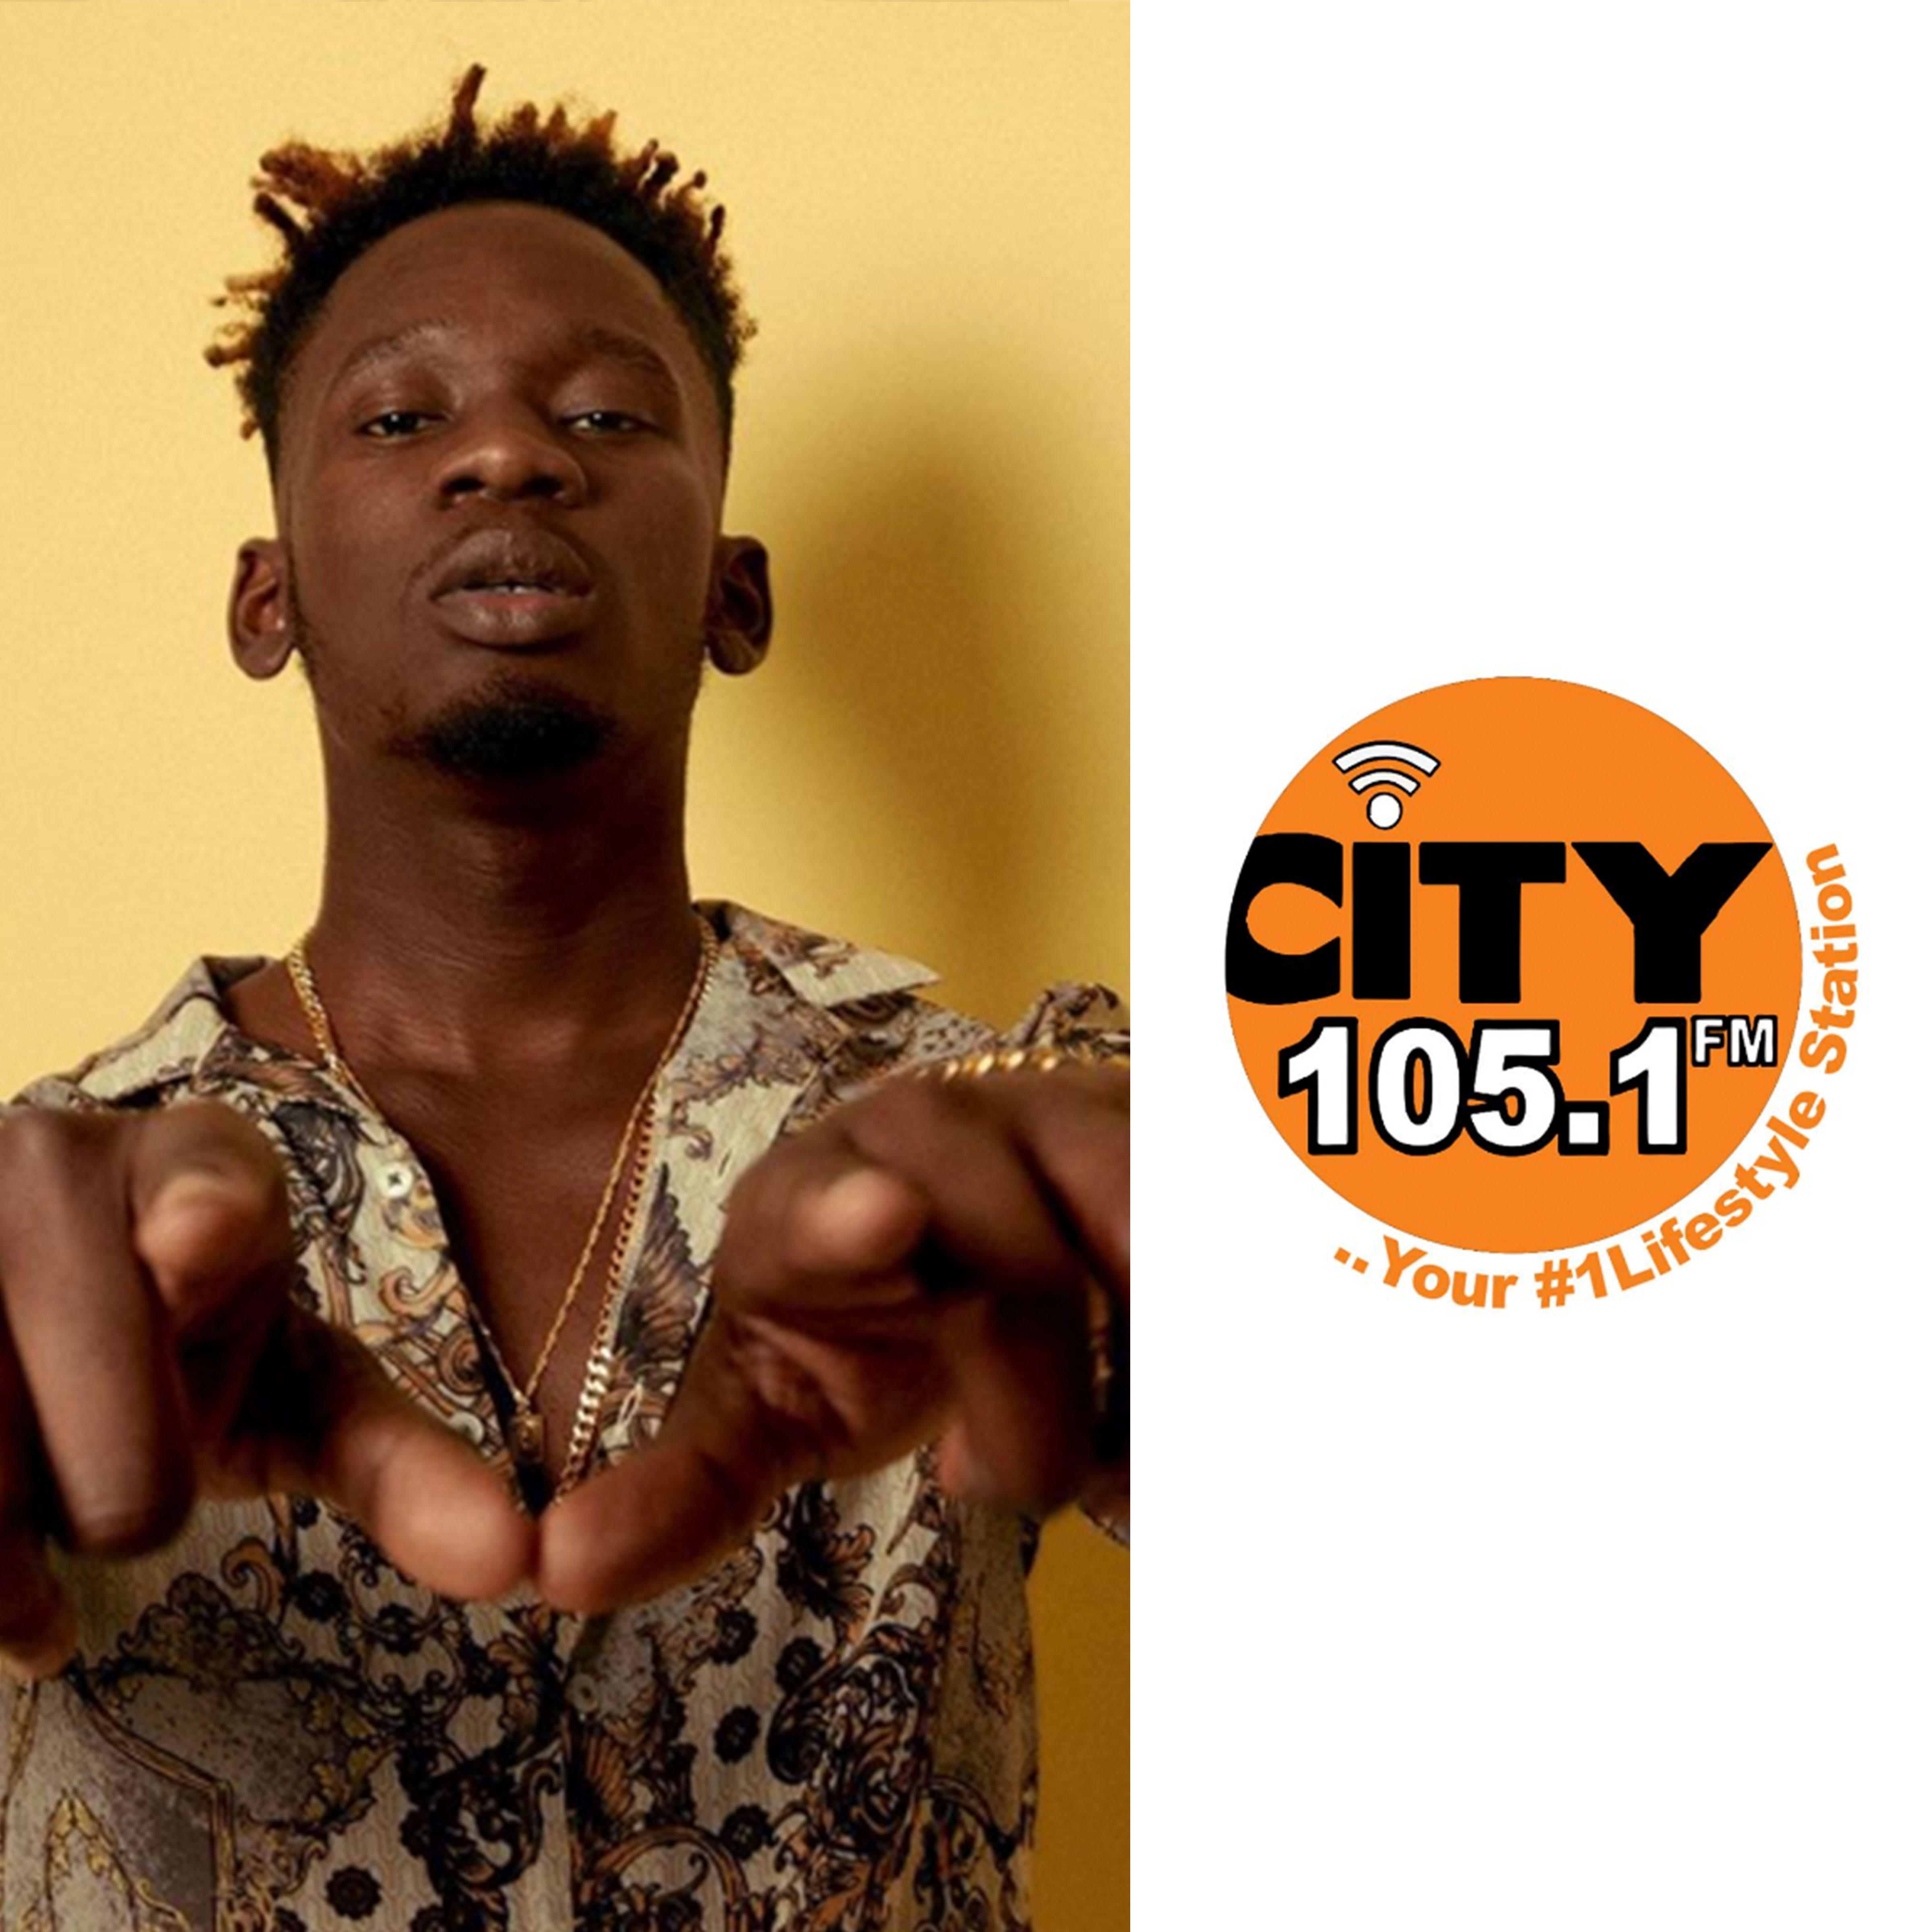 ICYMI: Mr Eazi And City FM Engaged In A Mild Twitter Exchange